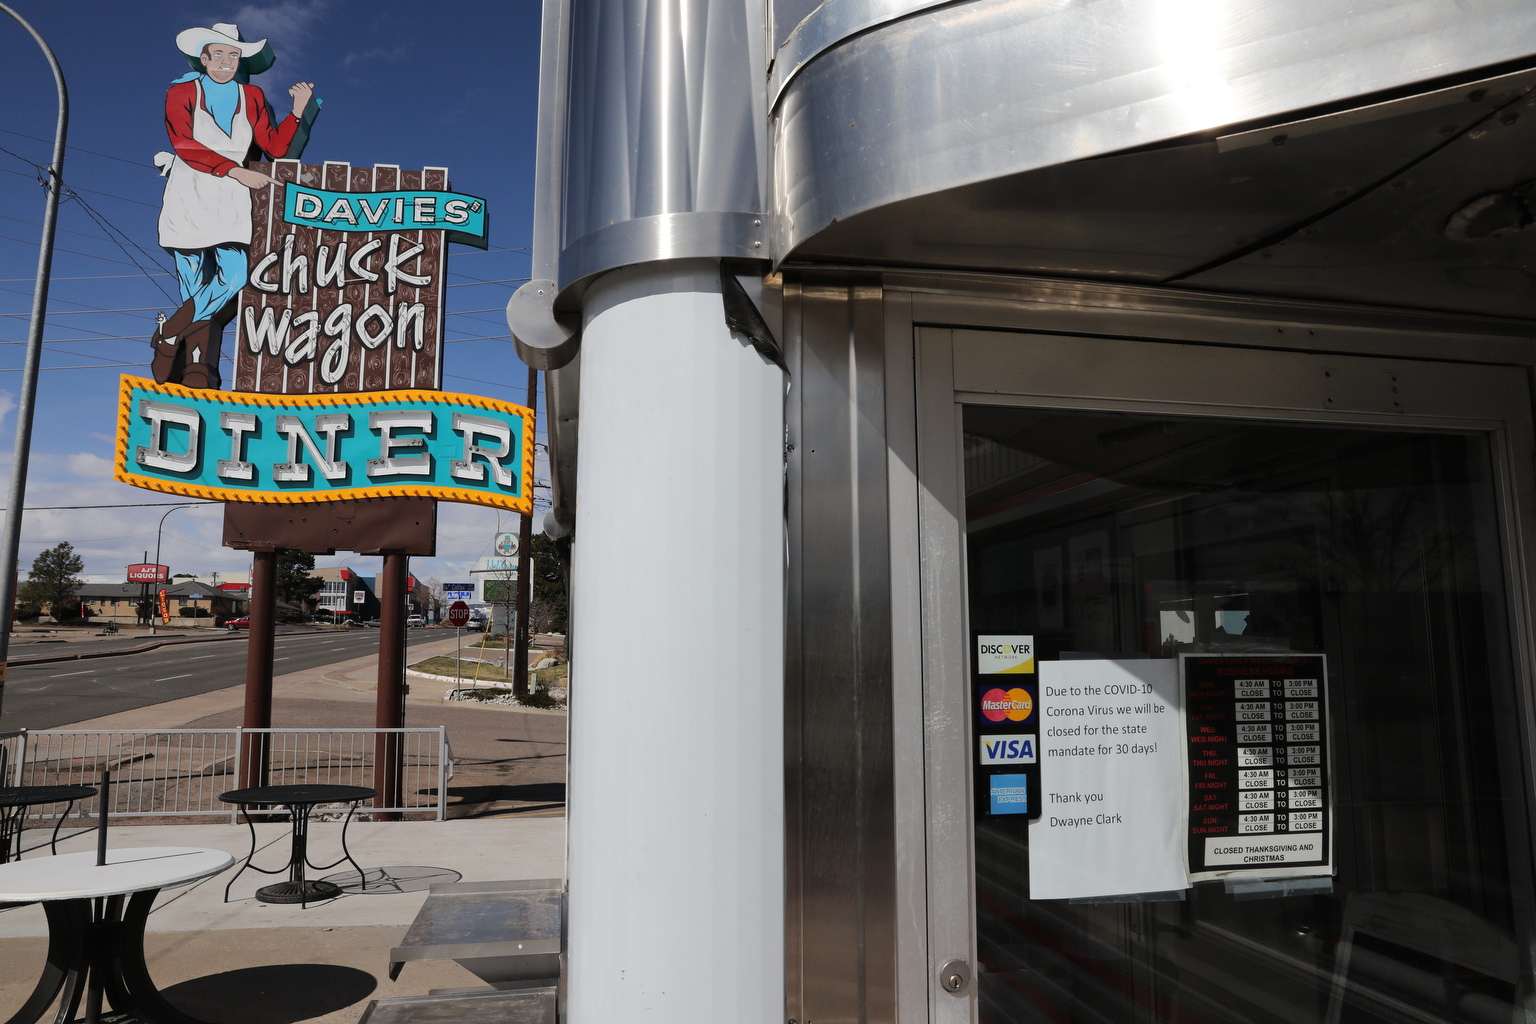 Davies Chuck Wagon Diner in Lakewood is closed Monday, March 23, 2020, the morning after Gov. Jared Polis advised people to stay home because of the coronavirus outbreak.